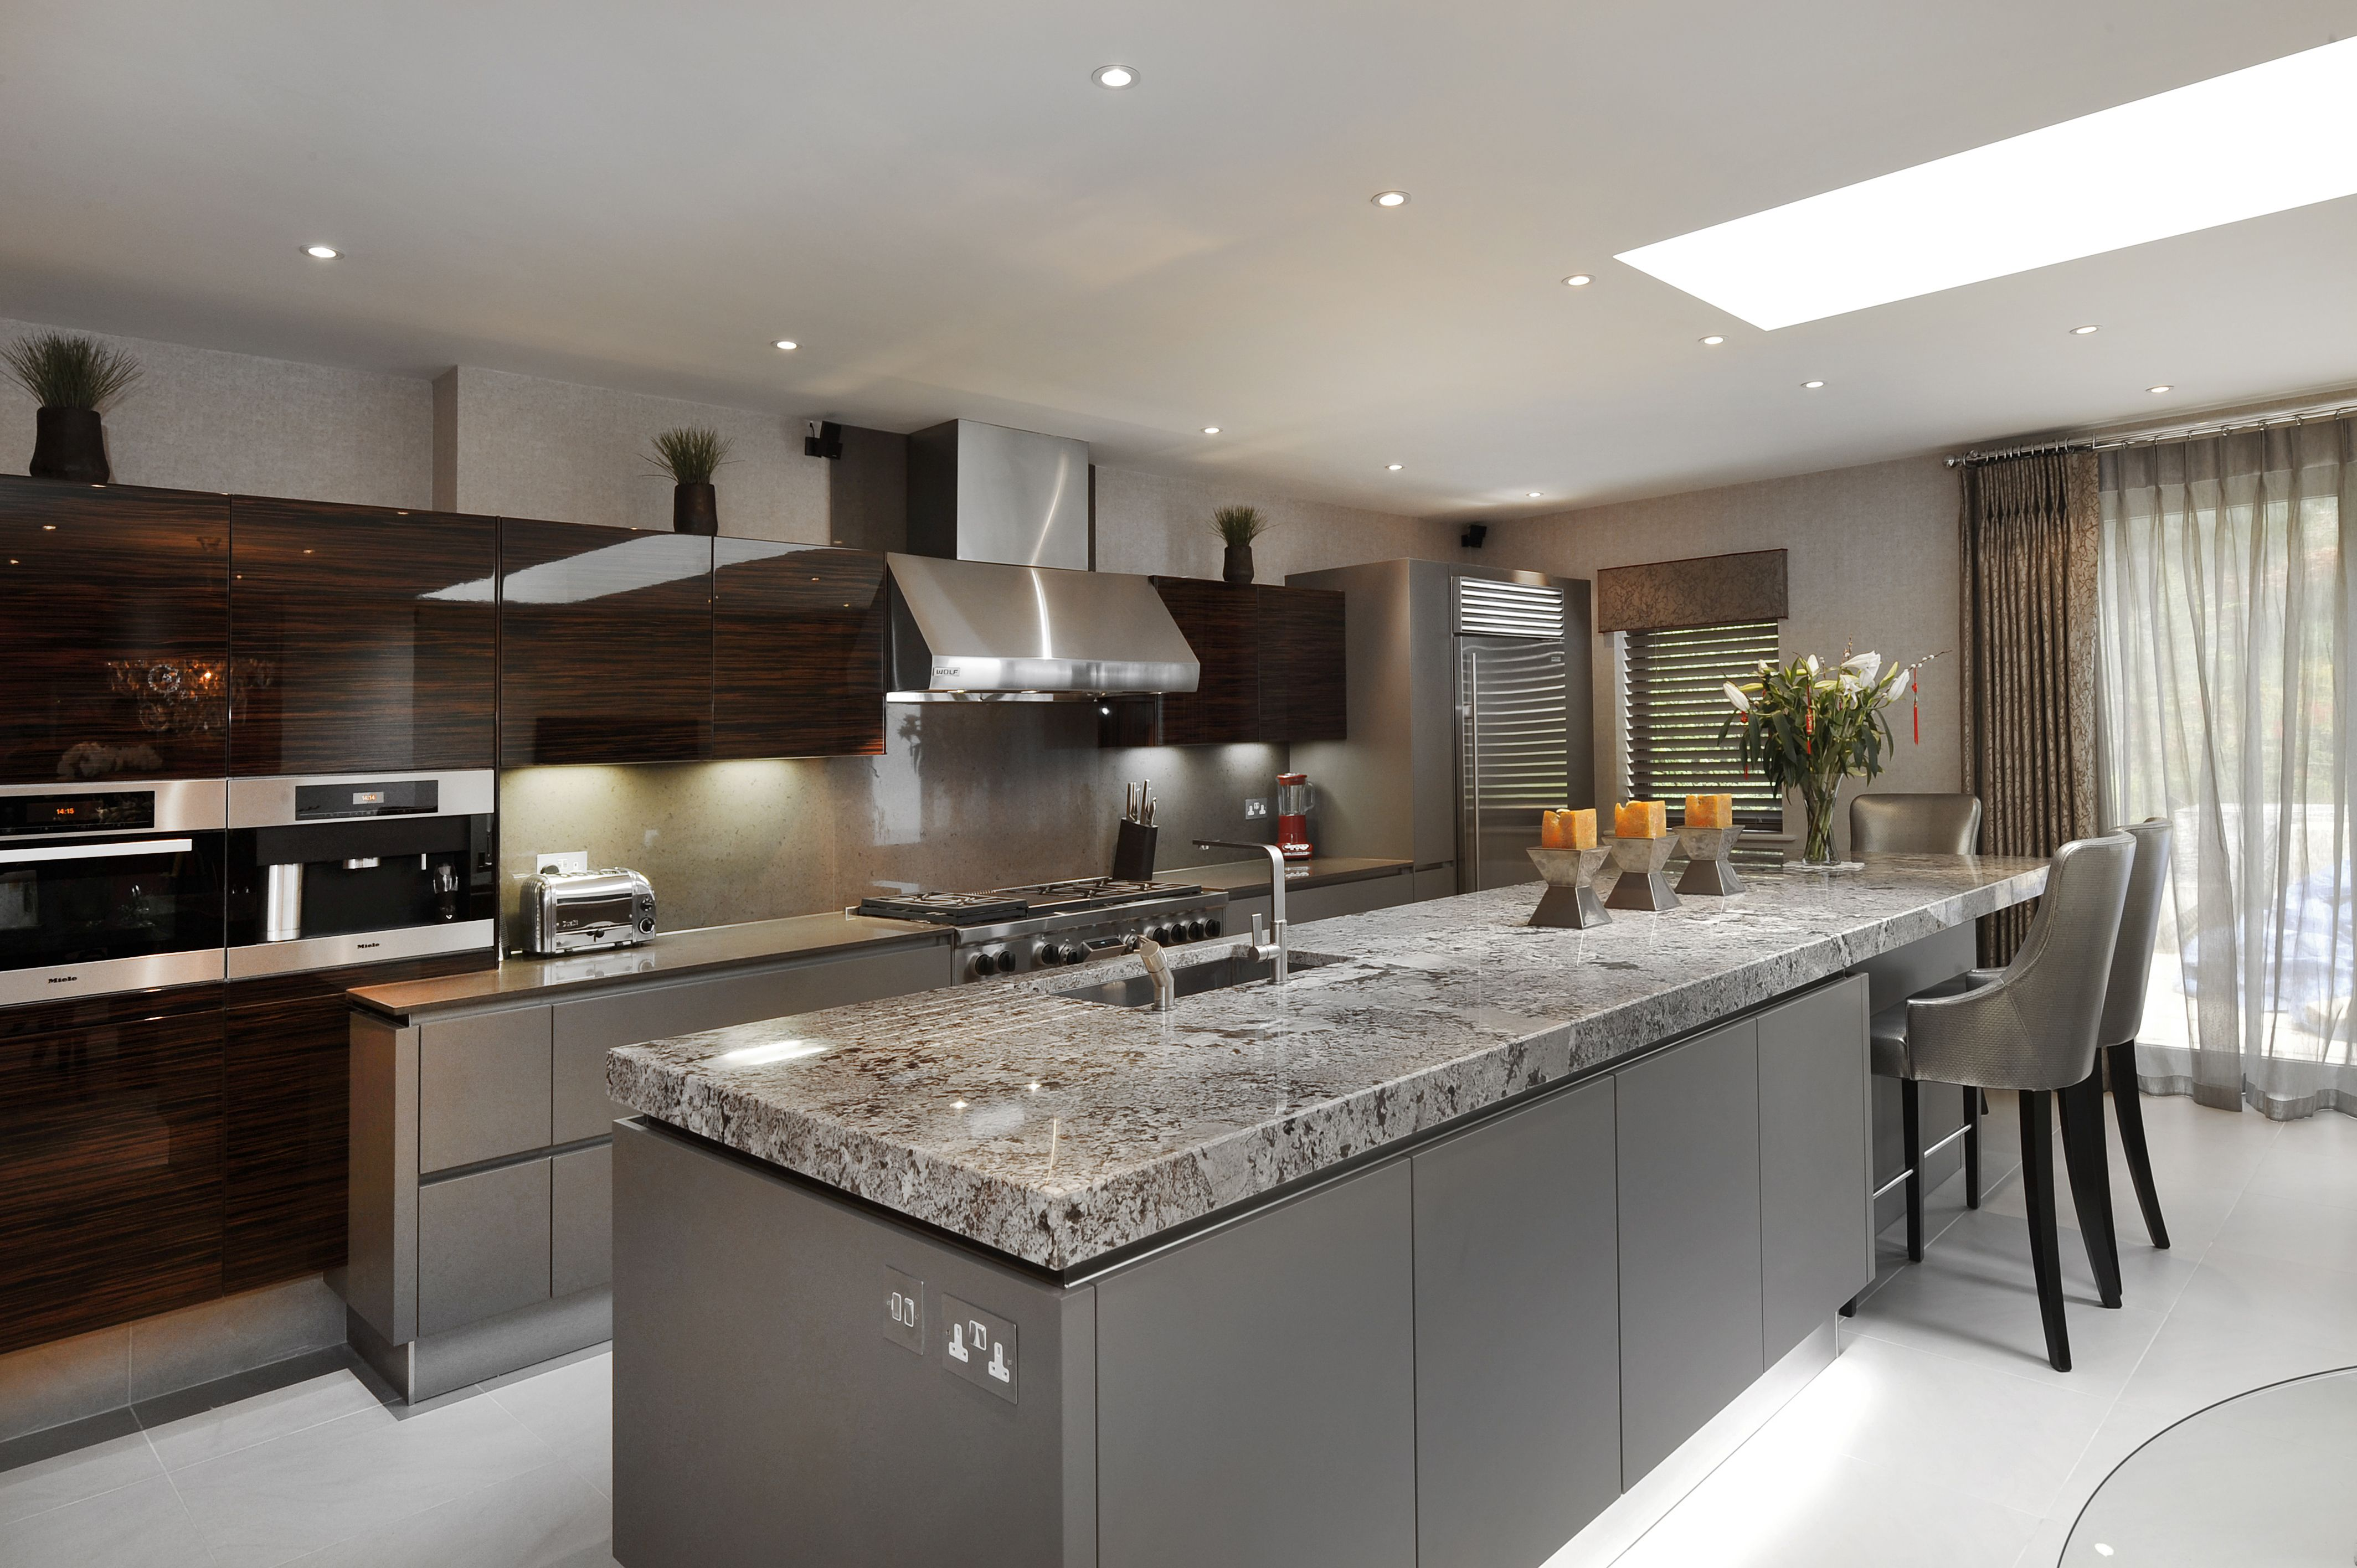 modern kitchen home interior high quality pictures   Extreme Design Client Kitchen. Contemporary, high quality ...